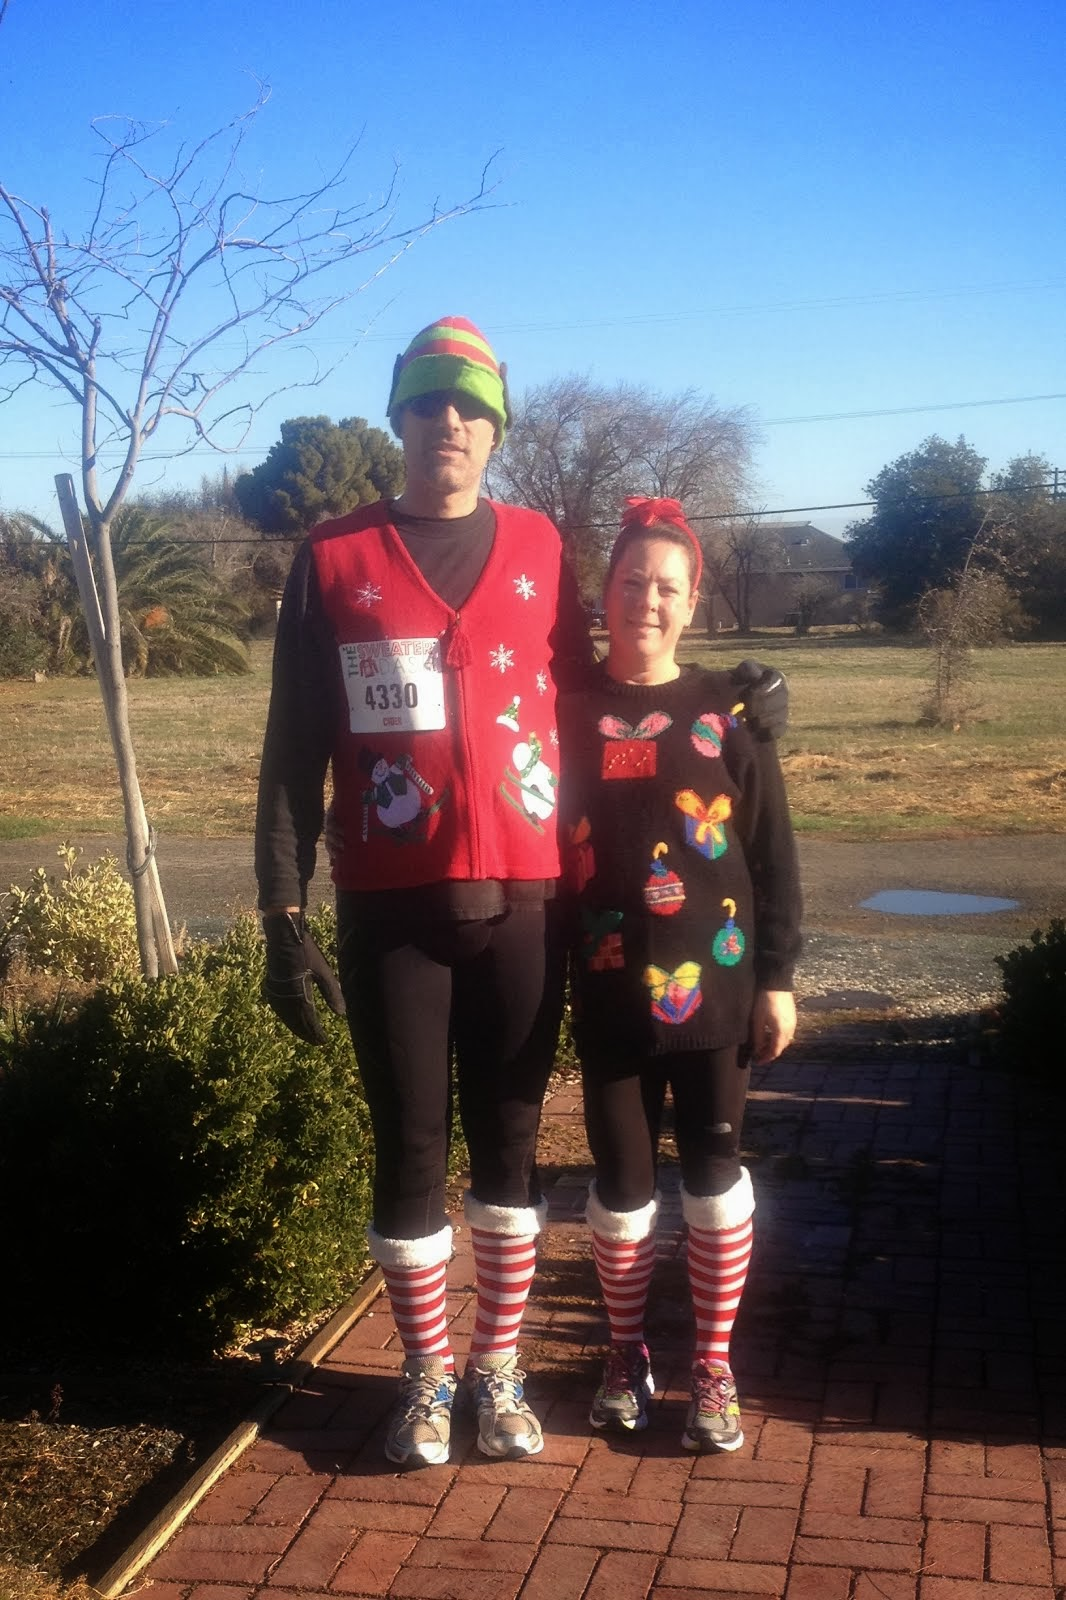 The Sweater Dash 5K